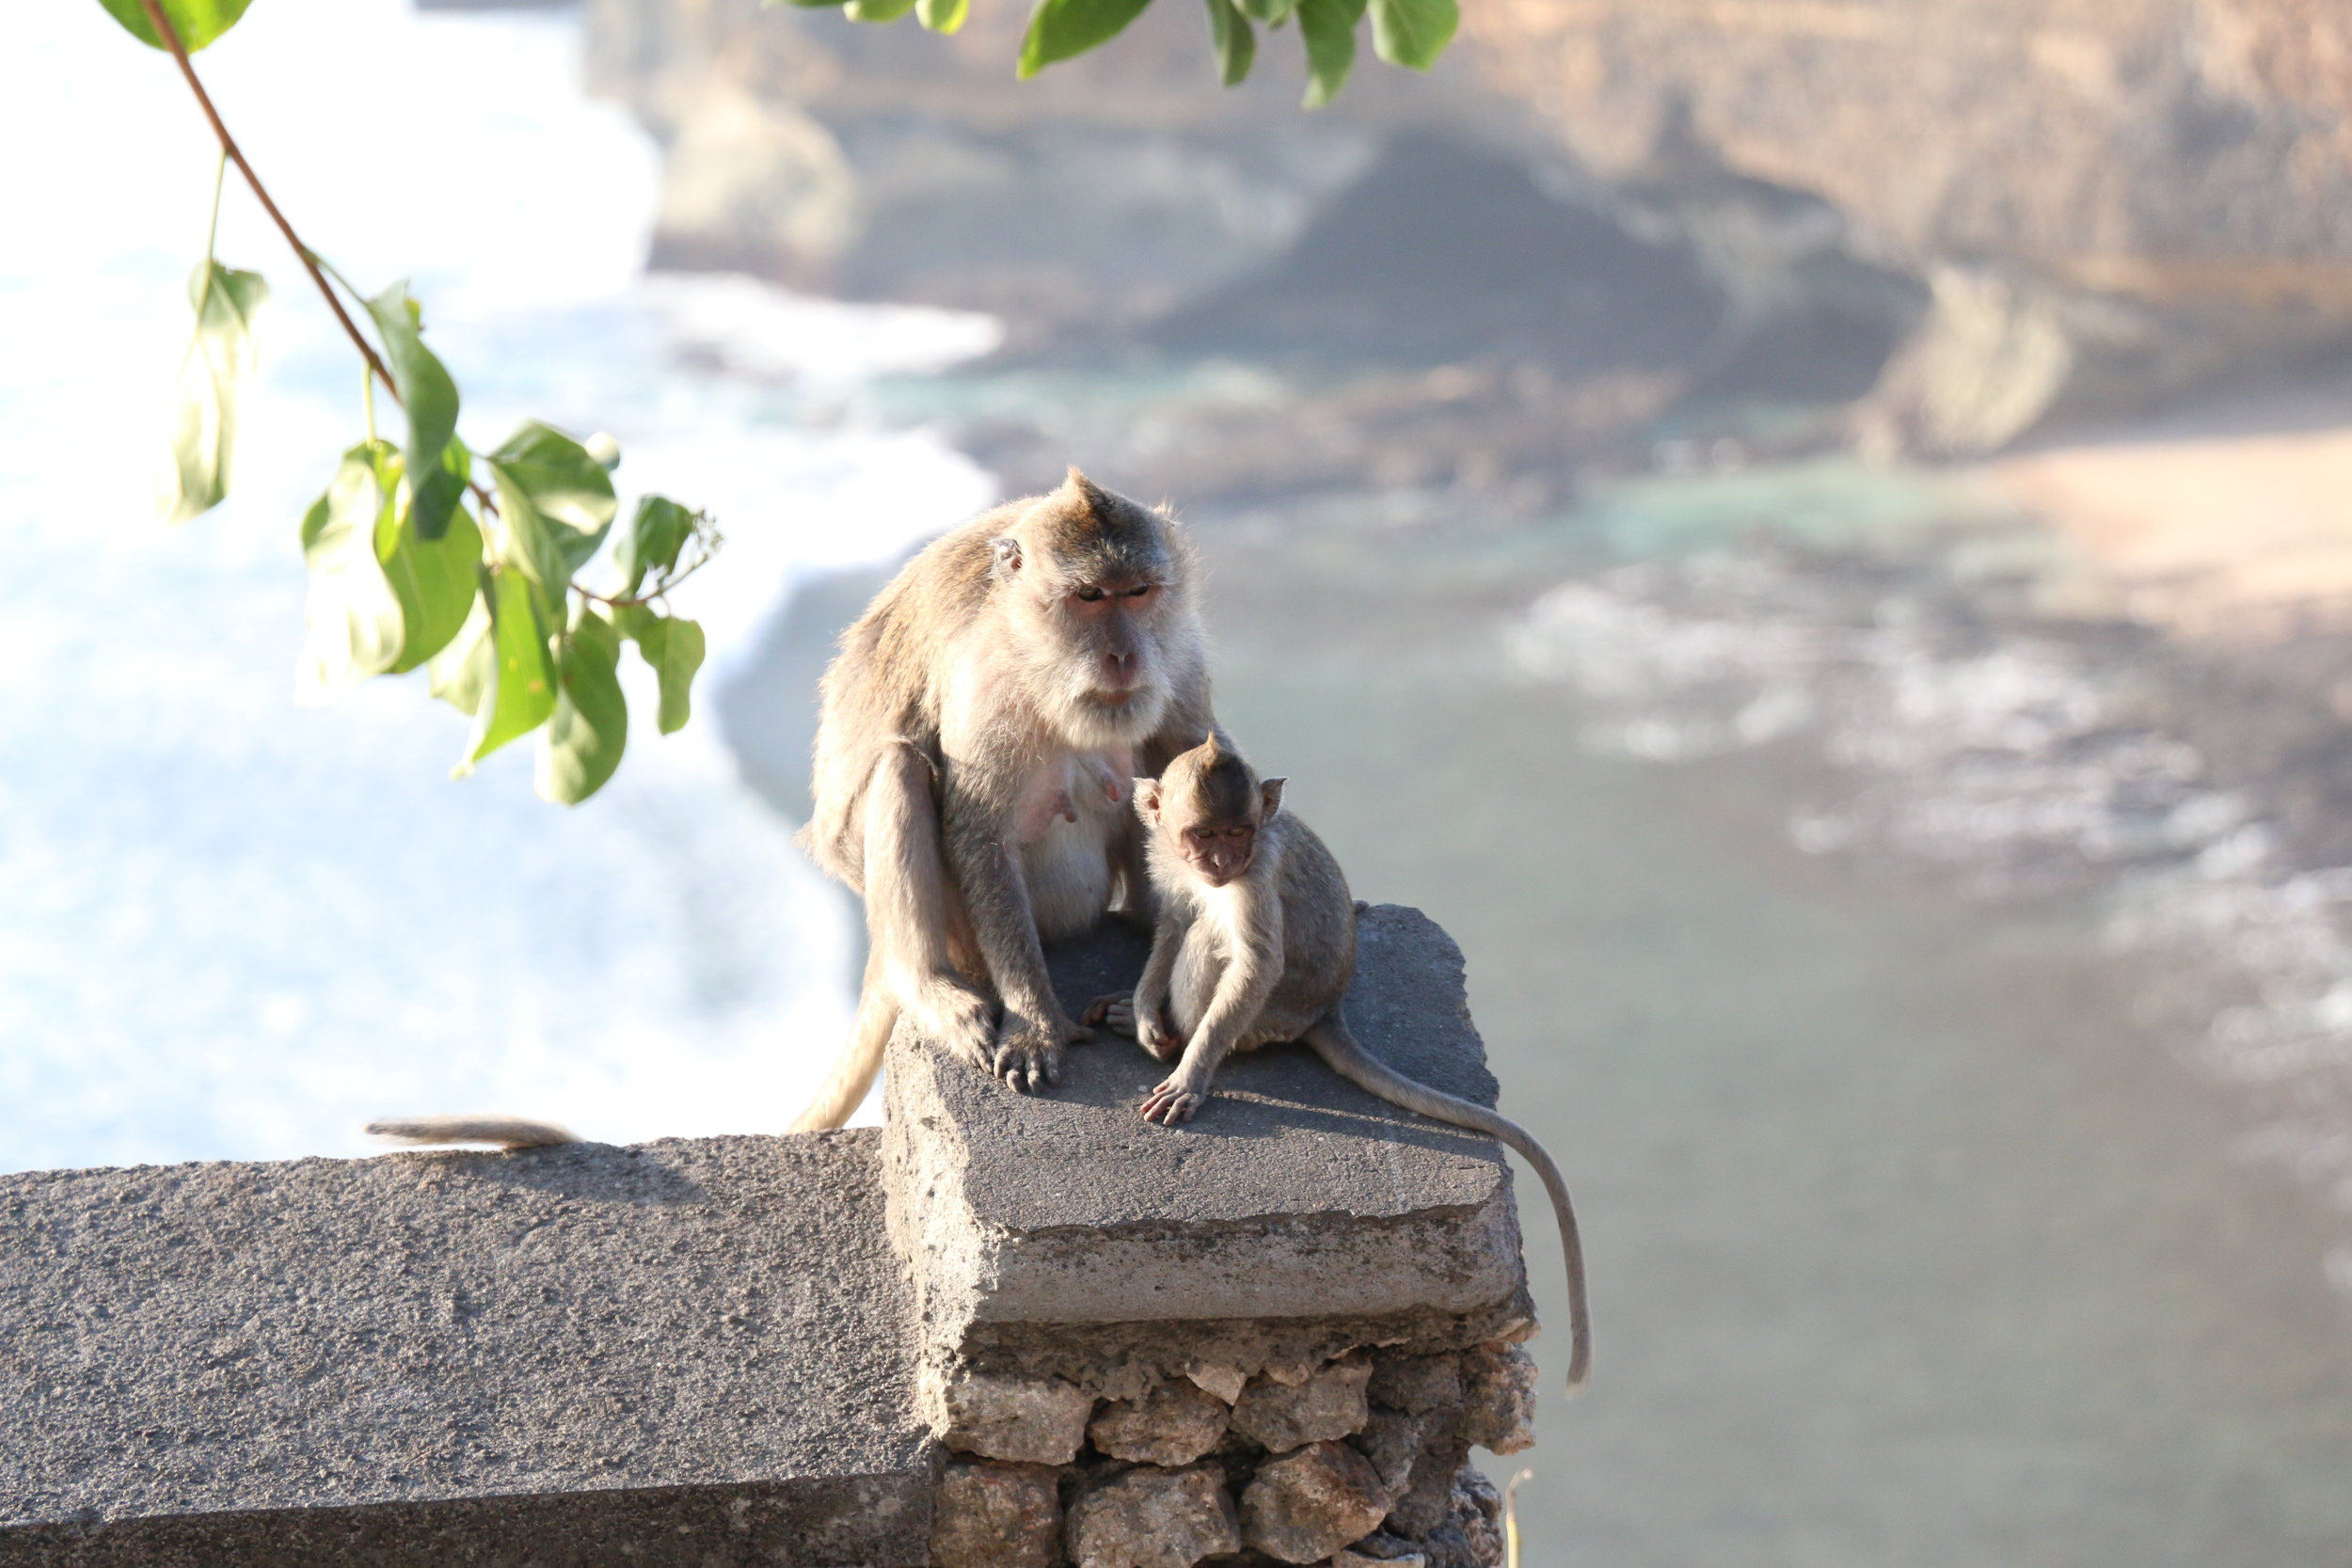 Cute but naughty monkeys! Another reason why you should watch the Kecak Dance at the Uluwatu Temples.